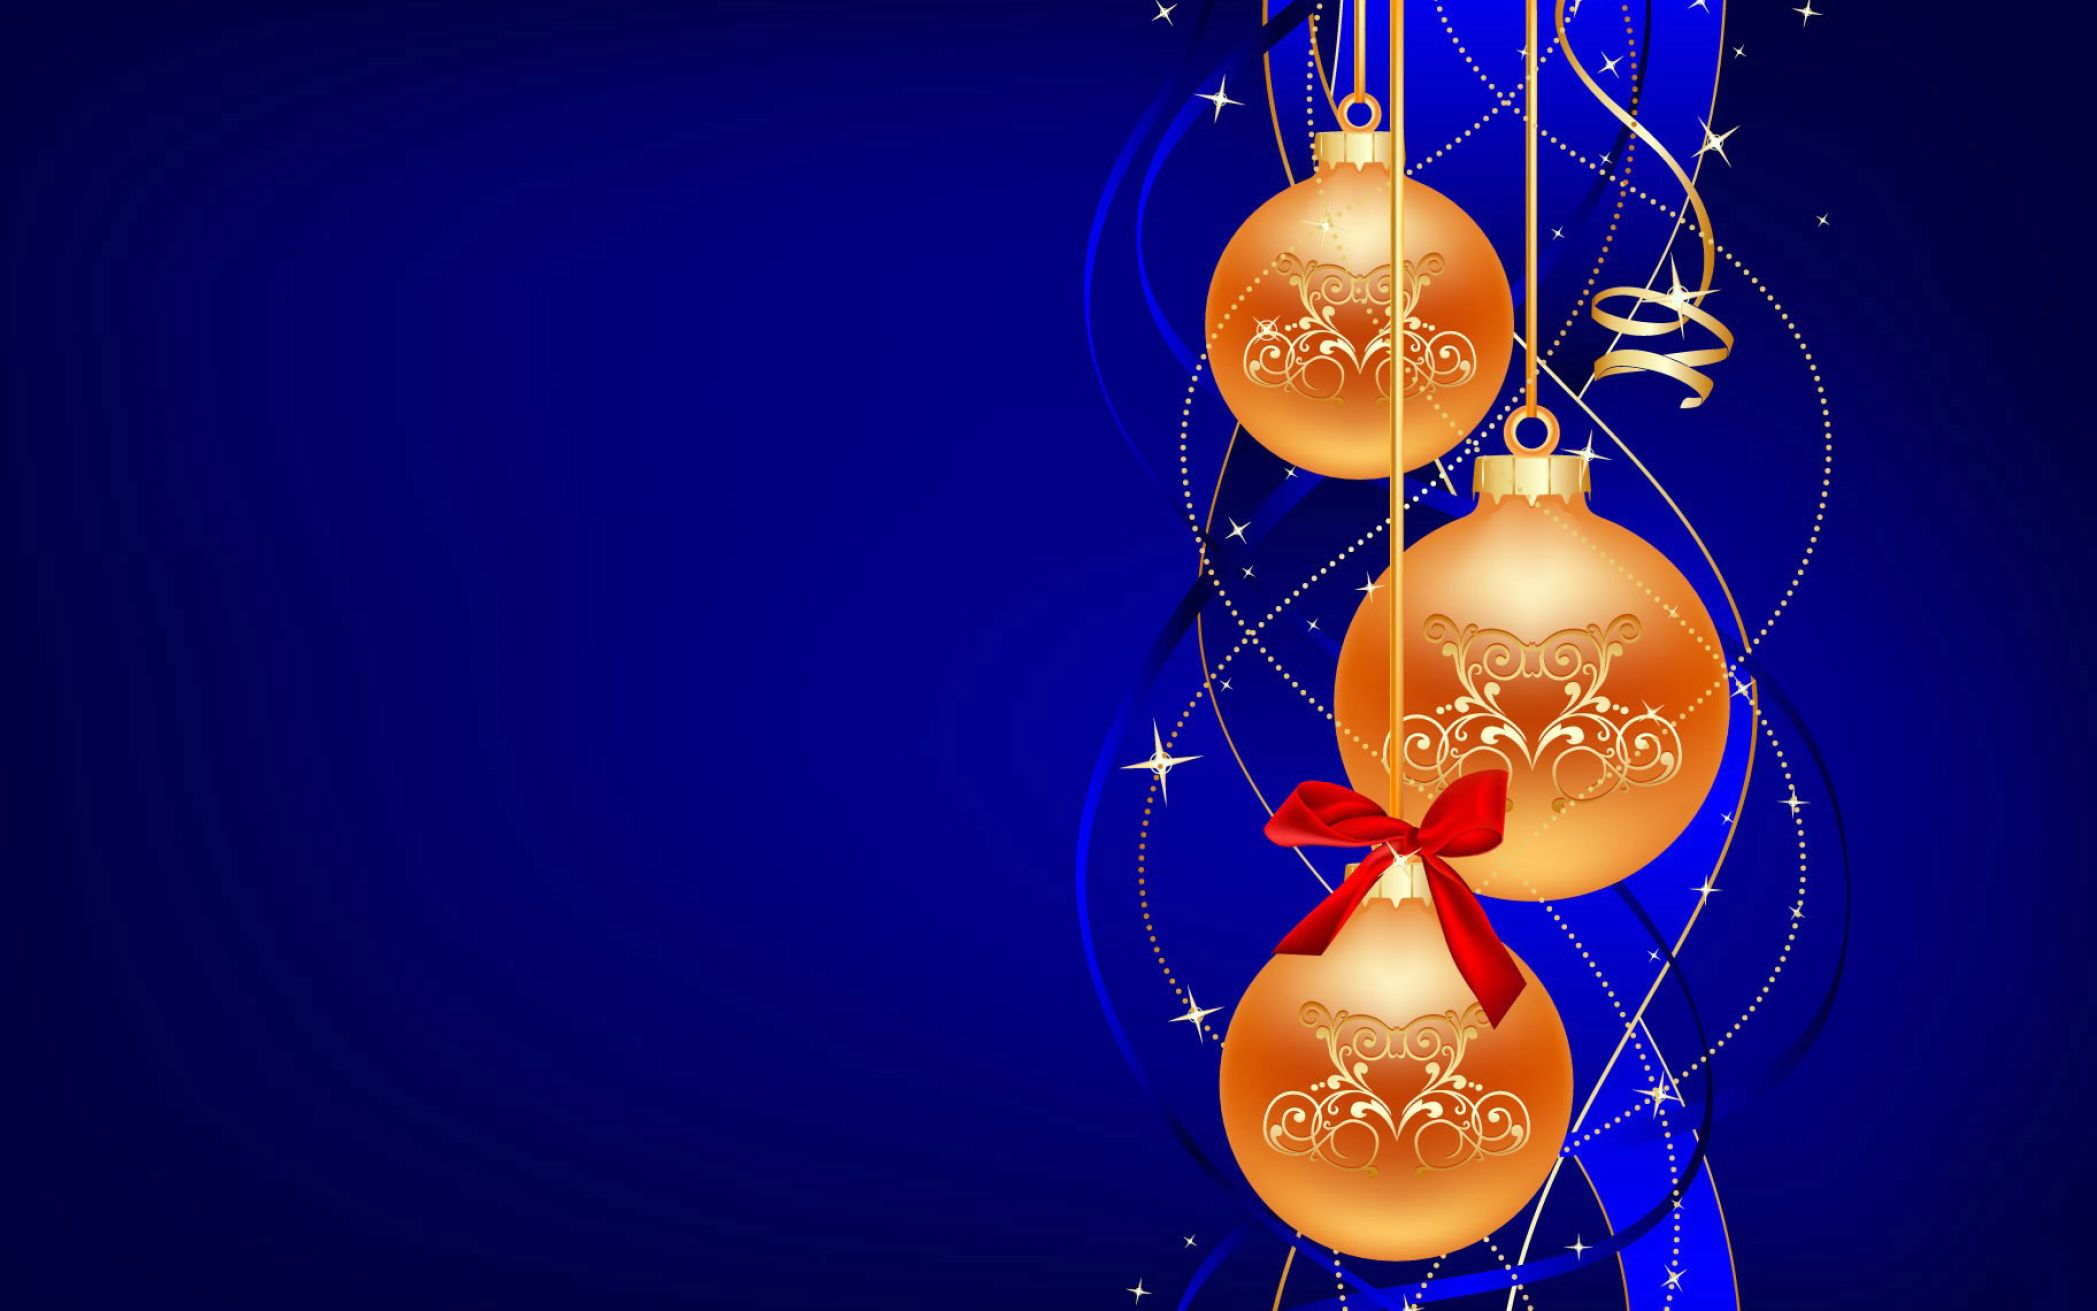 Animated christmas wallpaper for windows 7 pictures 2